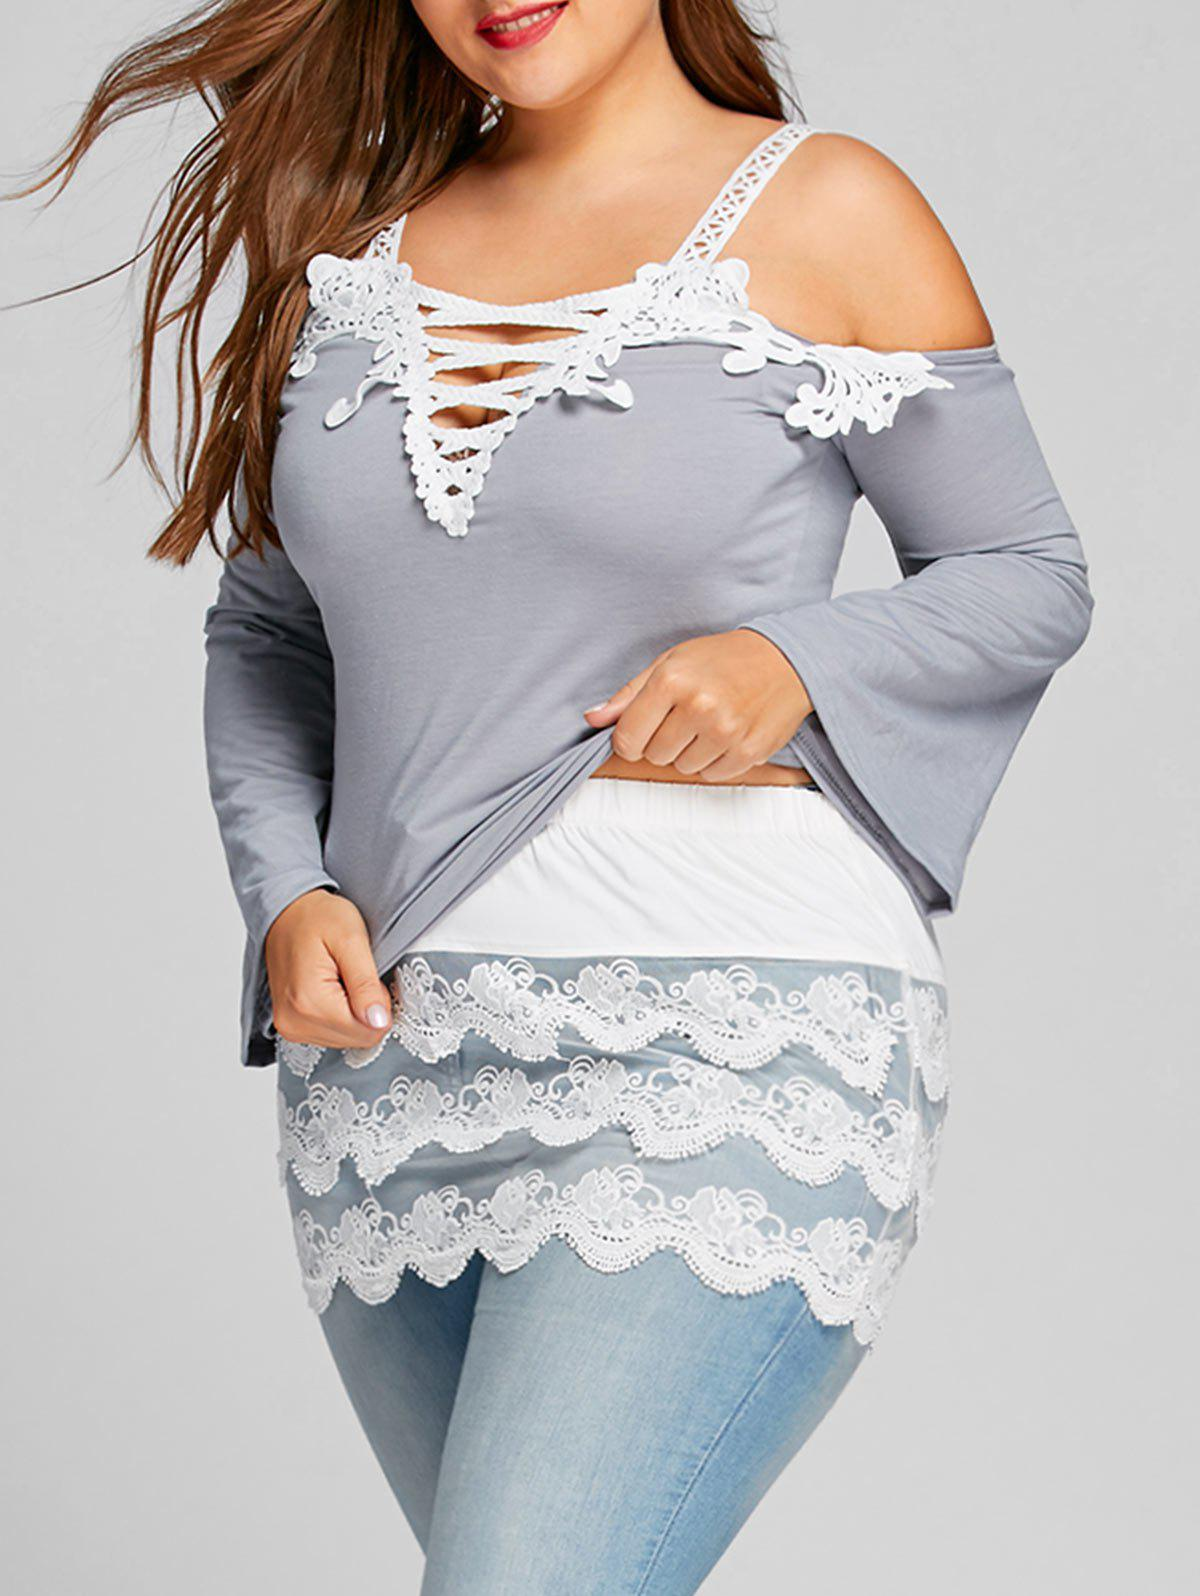 Plus Size Layered Scalloped Lace Extender Mini SkirtWOMEN<br><br>Size: 3XL; Color: WHITE; Material: Polyester; Length: Mini; Silhouette: Bodycon; Pattern Type: Solid; Embellishment: Lace; Season: Fall; Weight: 0.1500kg; Package Contents: 1 x Skirt;